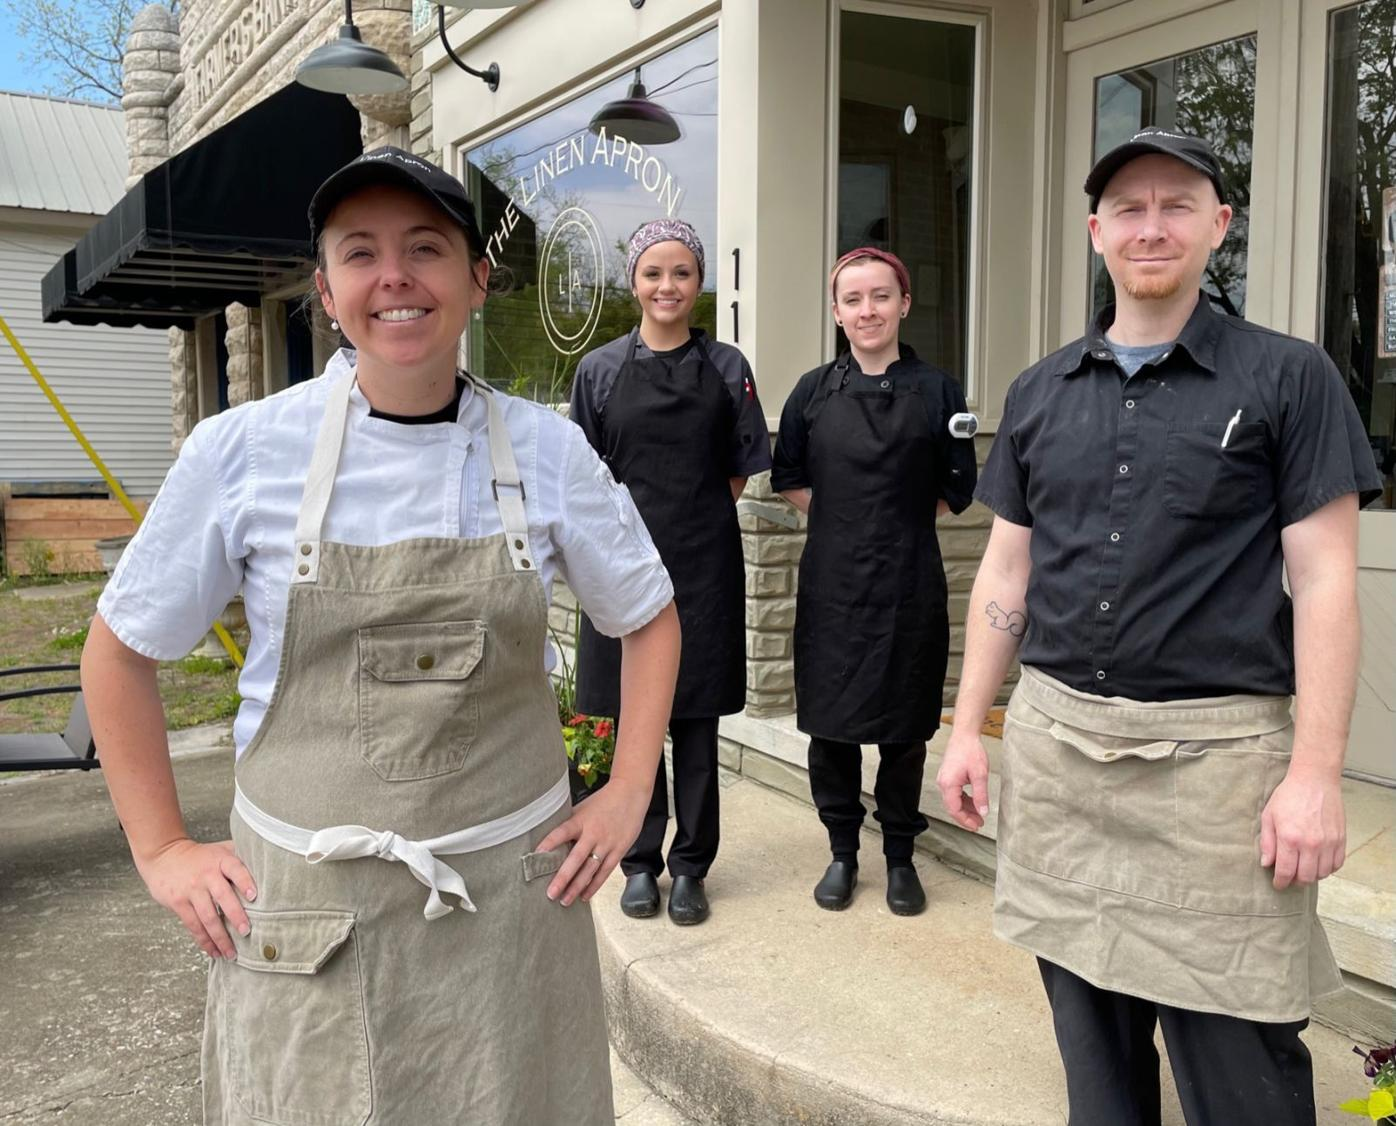 Linen Apron eatery opening in Smiths Grove